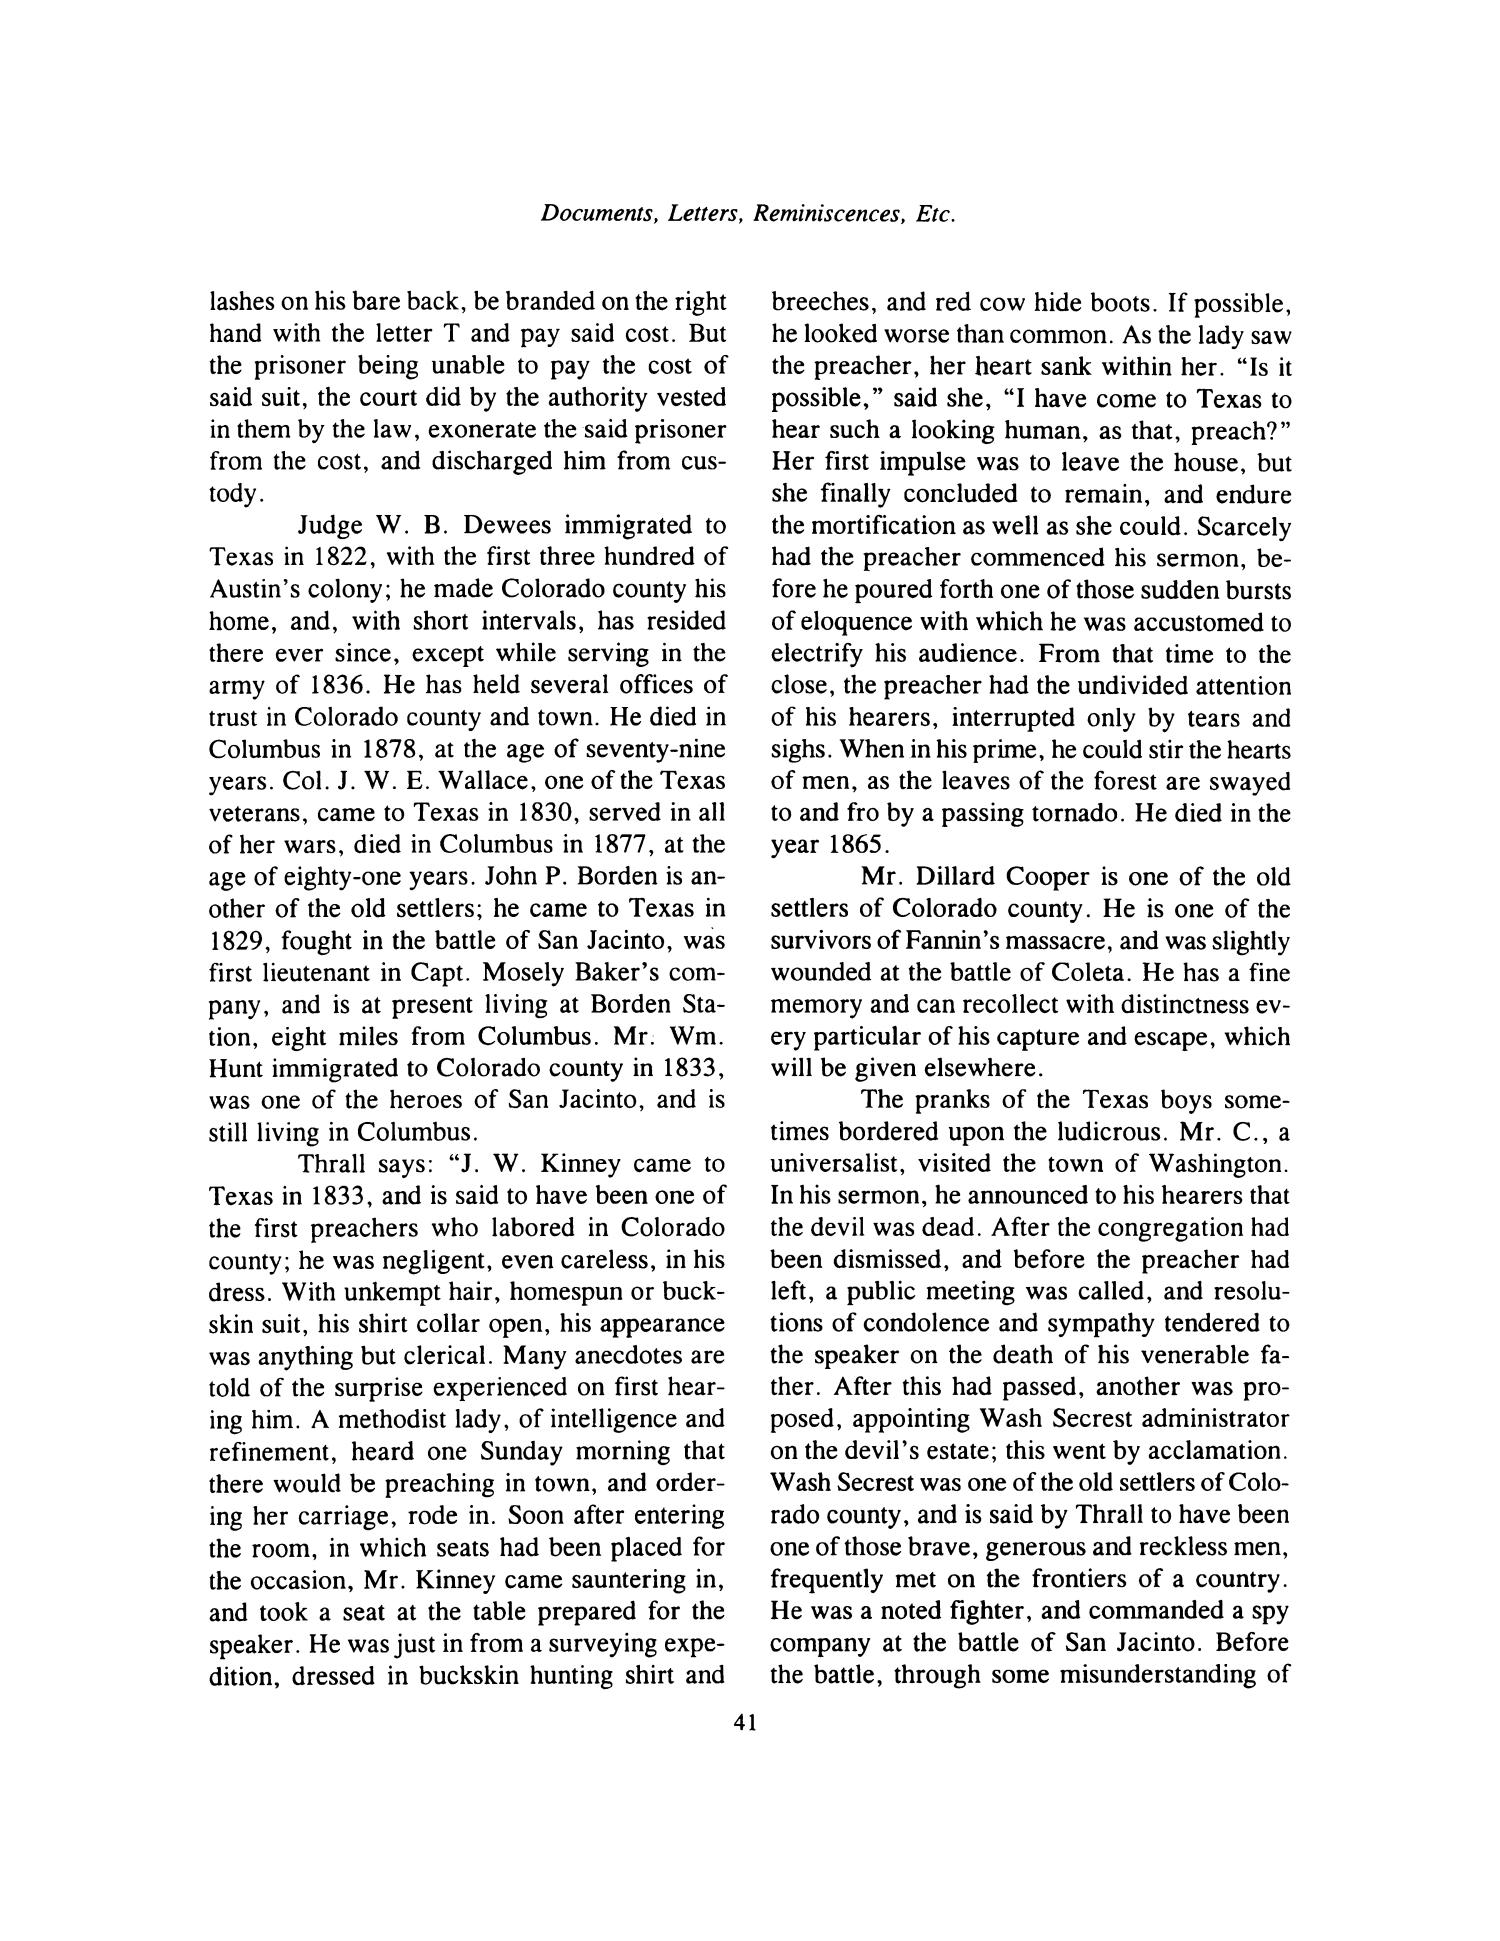 Nesbitt Memorial Library Journal, Volume 8, Number 1, January, 1998                                                                                                      41